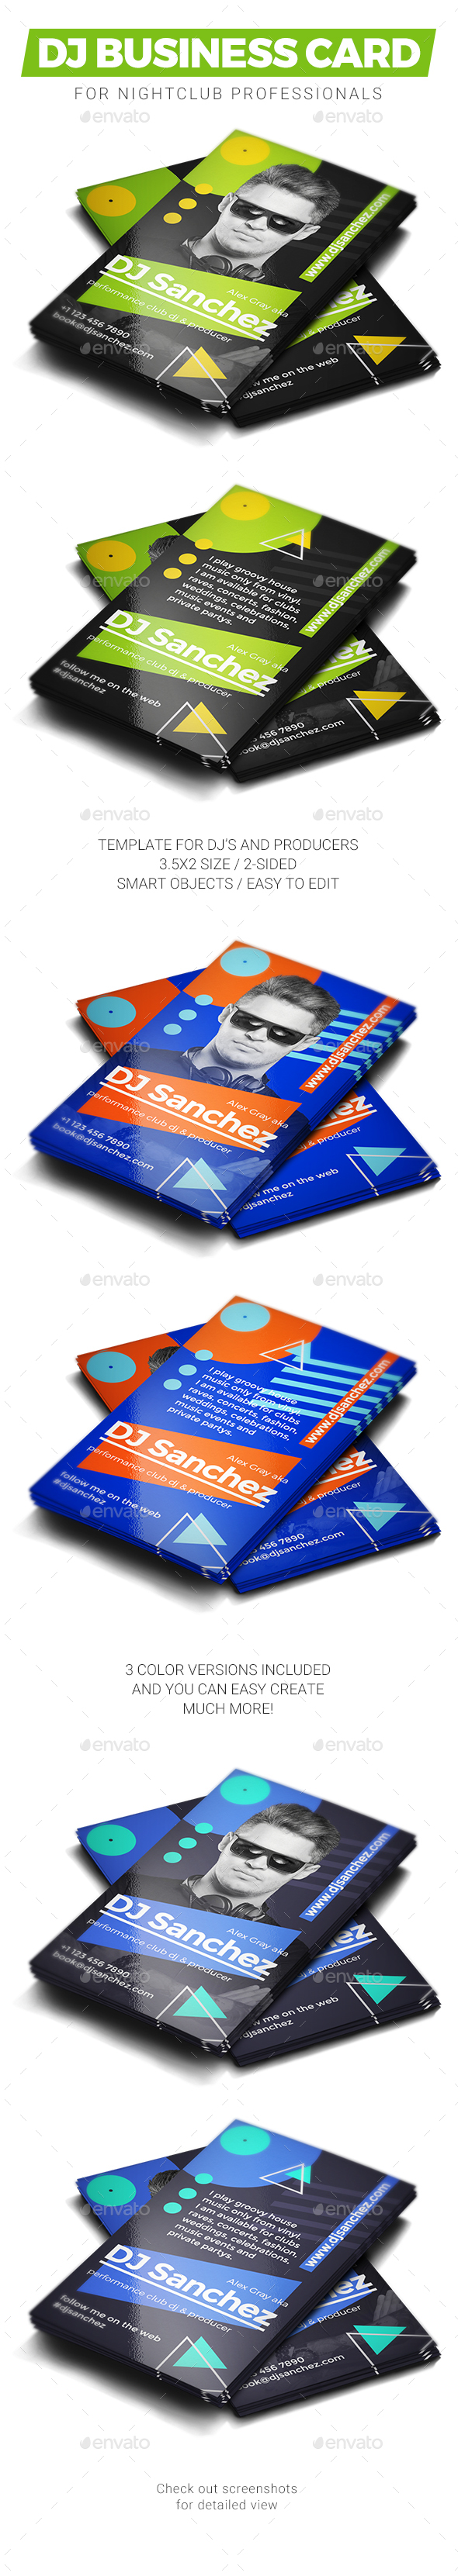 dj business card graphics designs templates from graphicriver